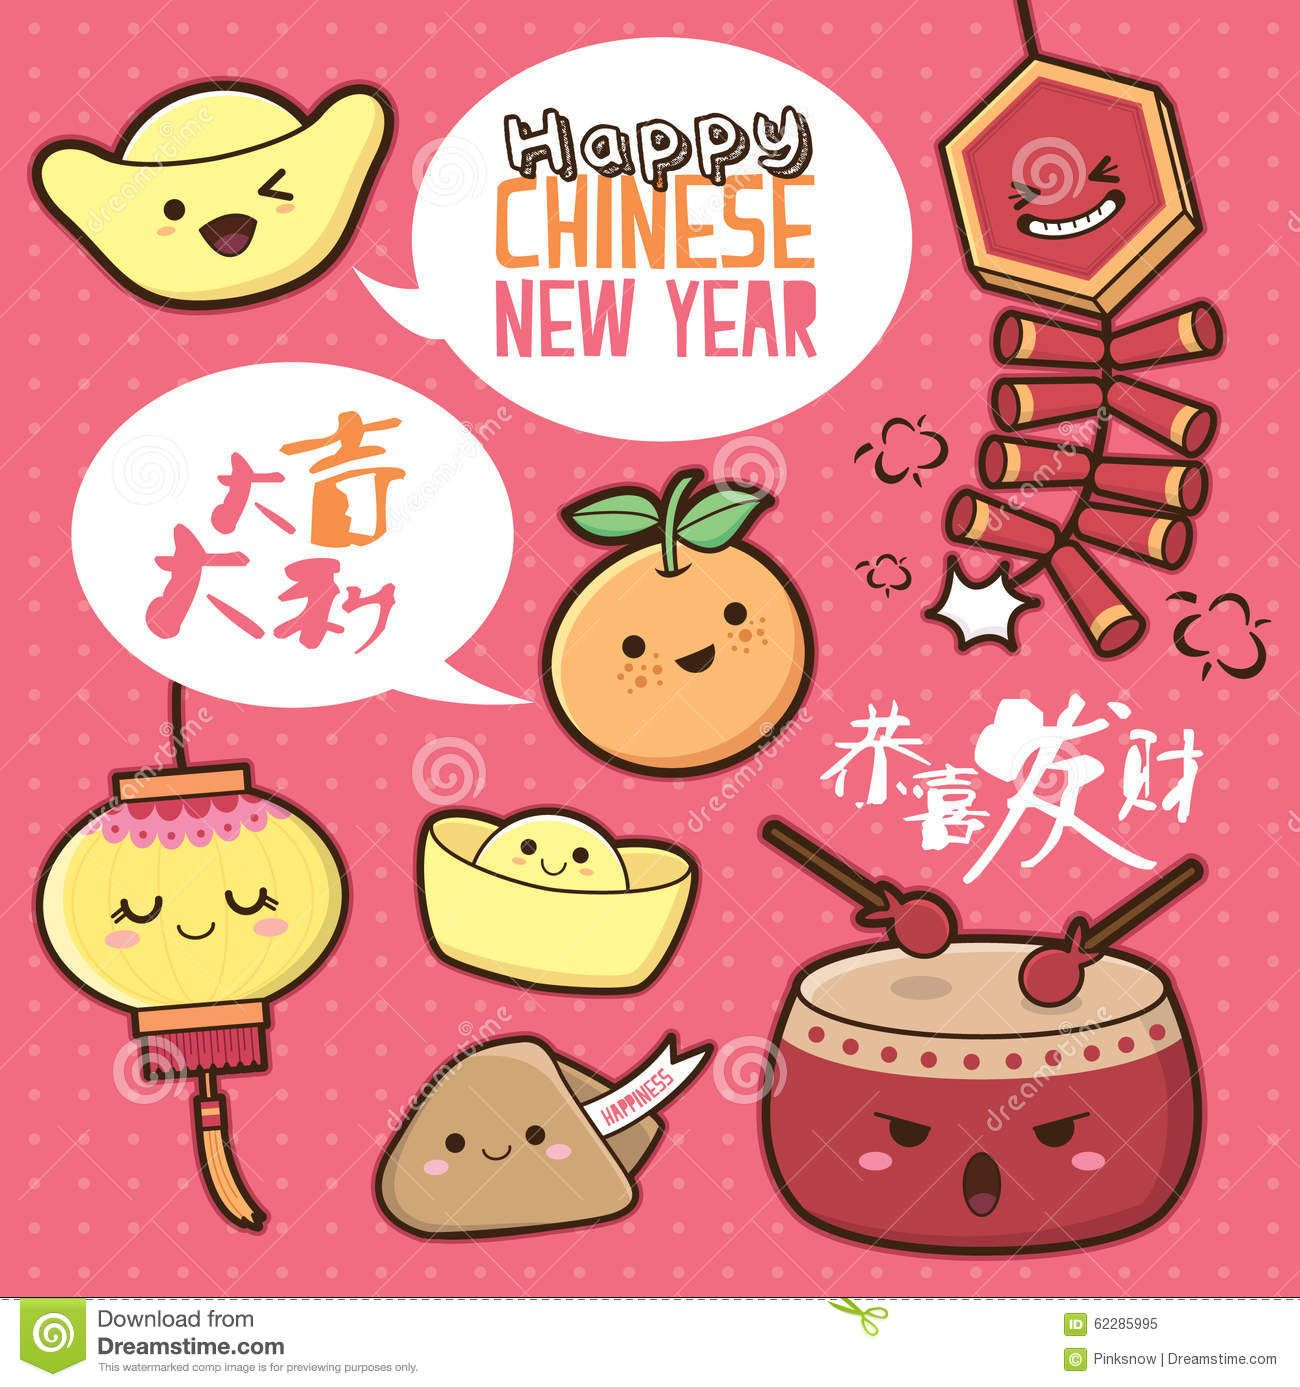 10+ Animated Chinese Food Clipart